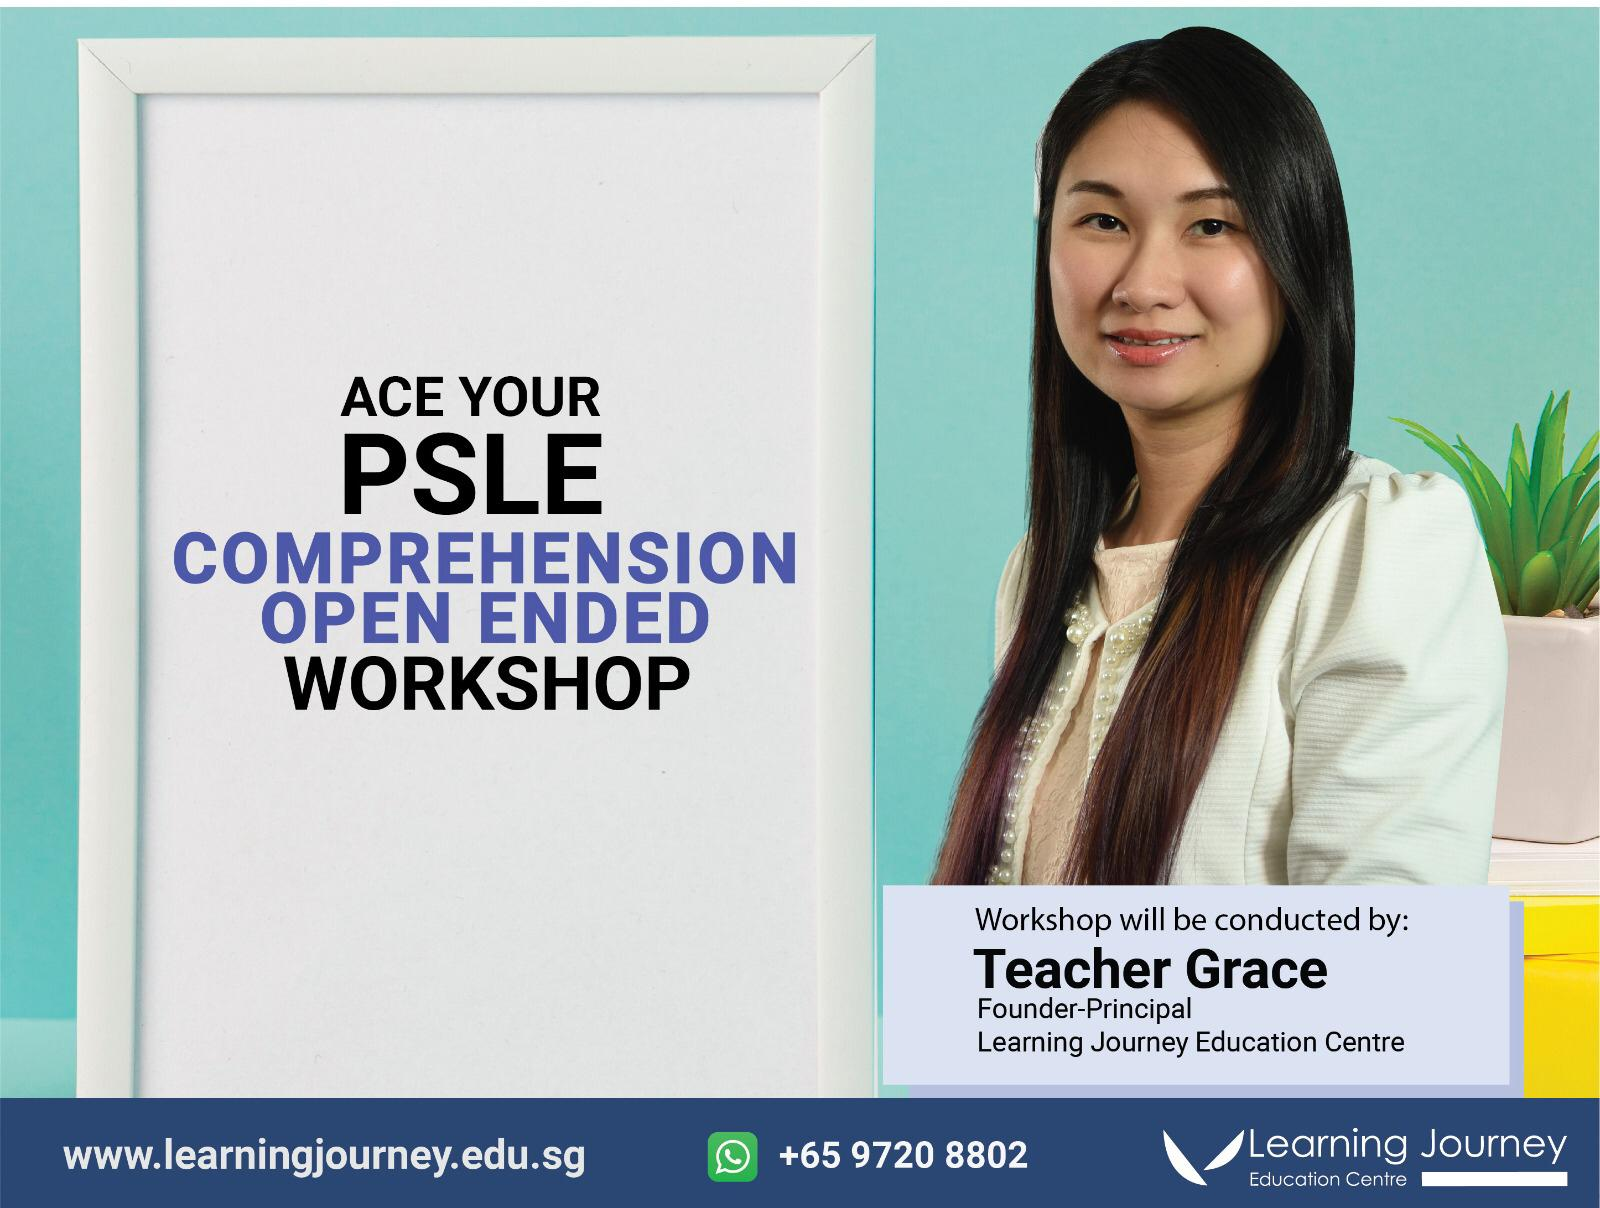 Ace-your-PSLE-Comprehension-Open-Ended-Workshop-the-online-english-classroom-learning-journey-education-centre